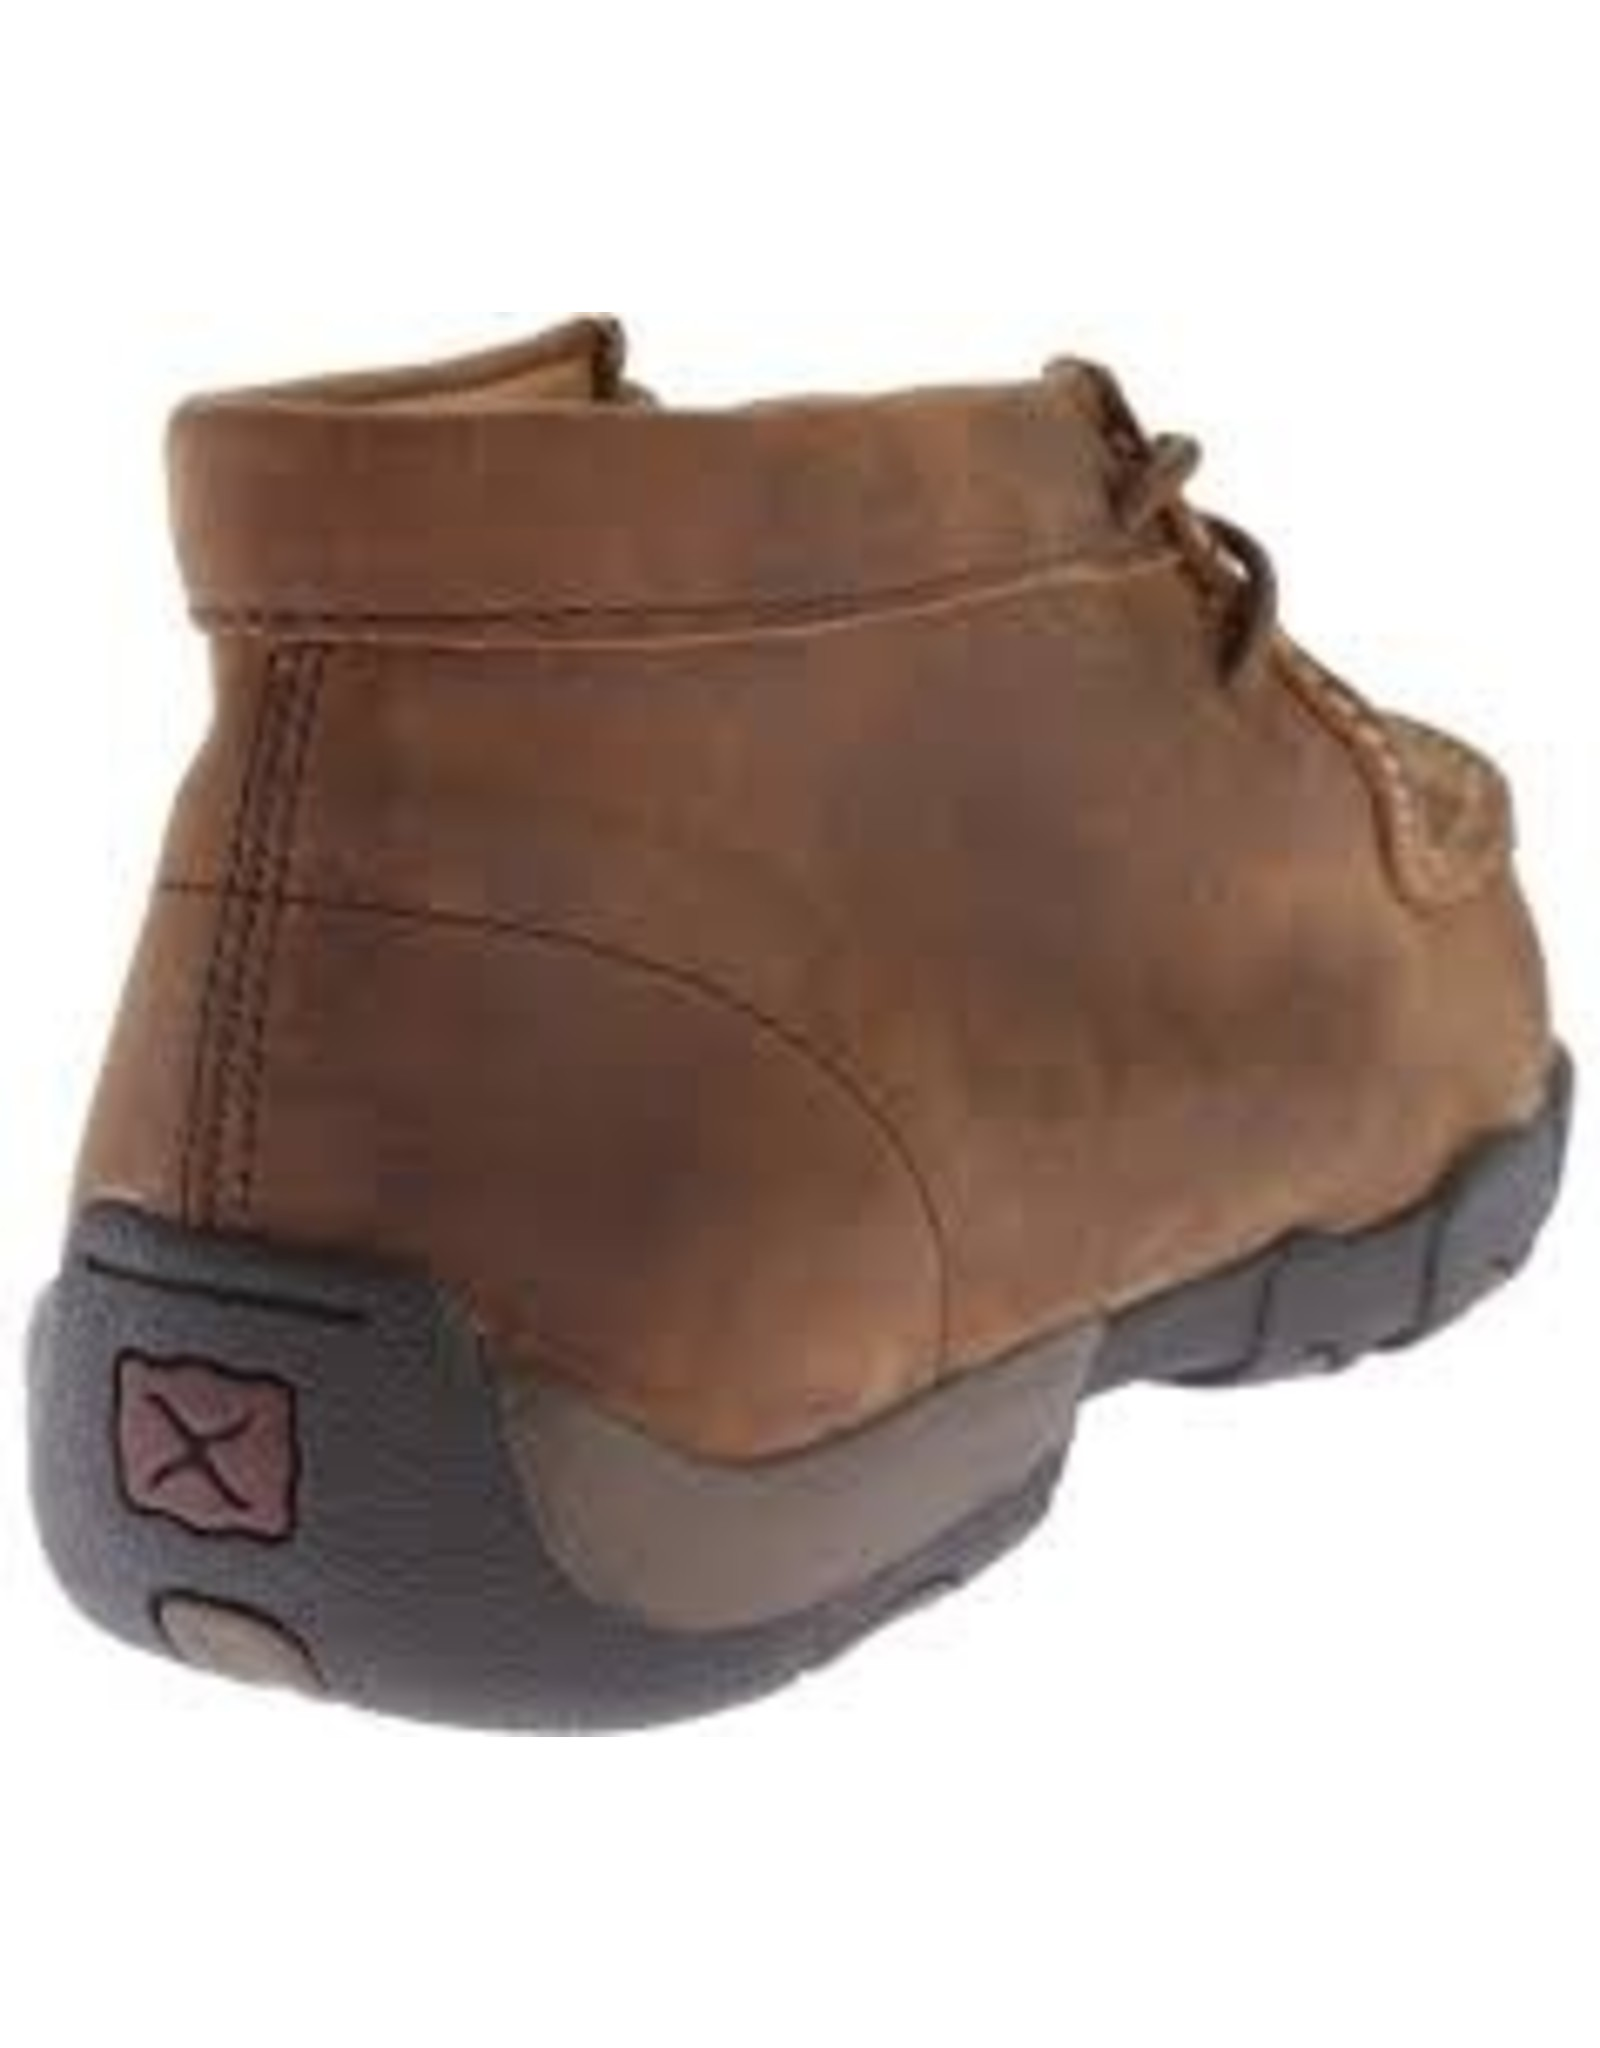 Boots-Men Twisted X MDMSM01 Steel Toe Met Gaurd Driving Moc